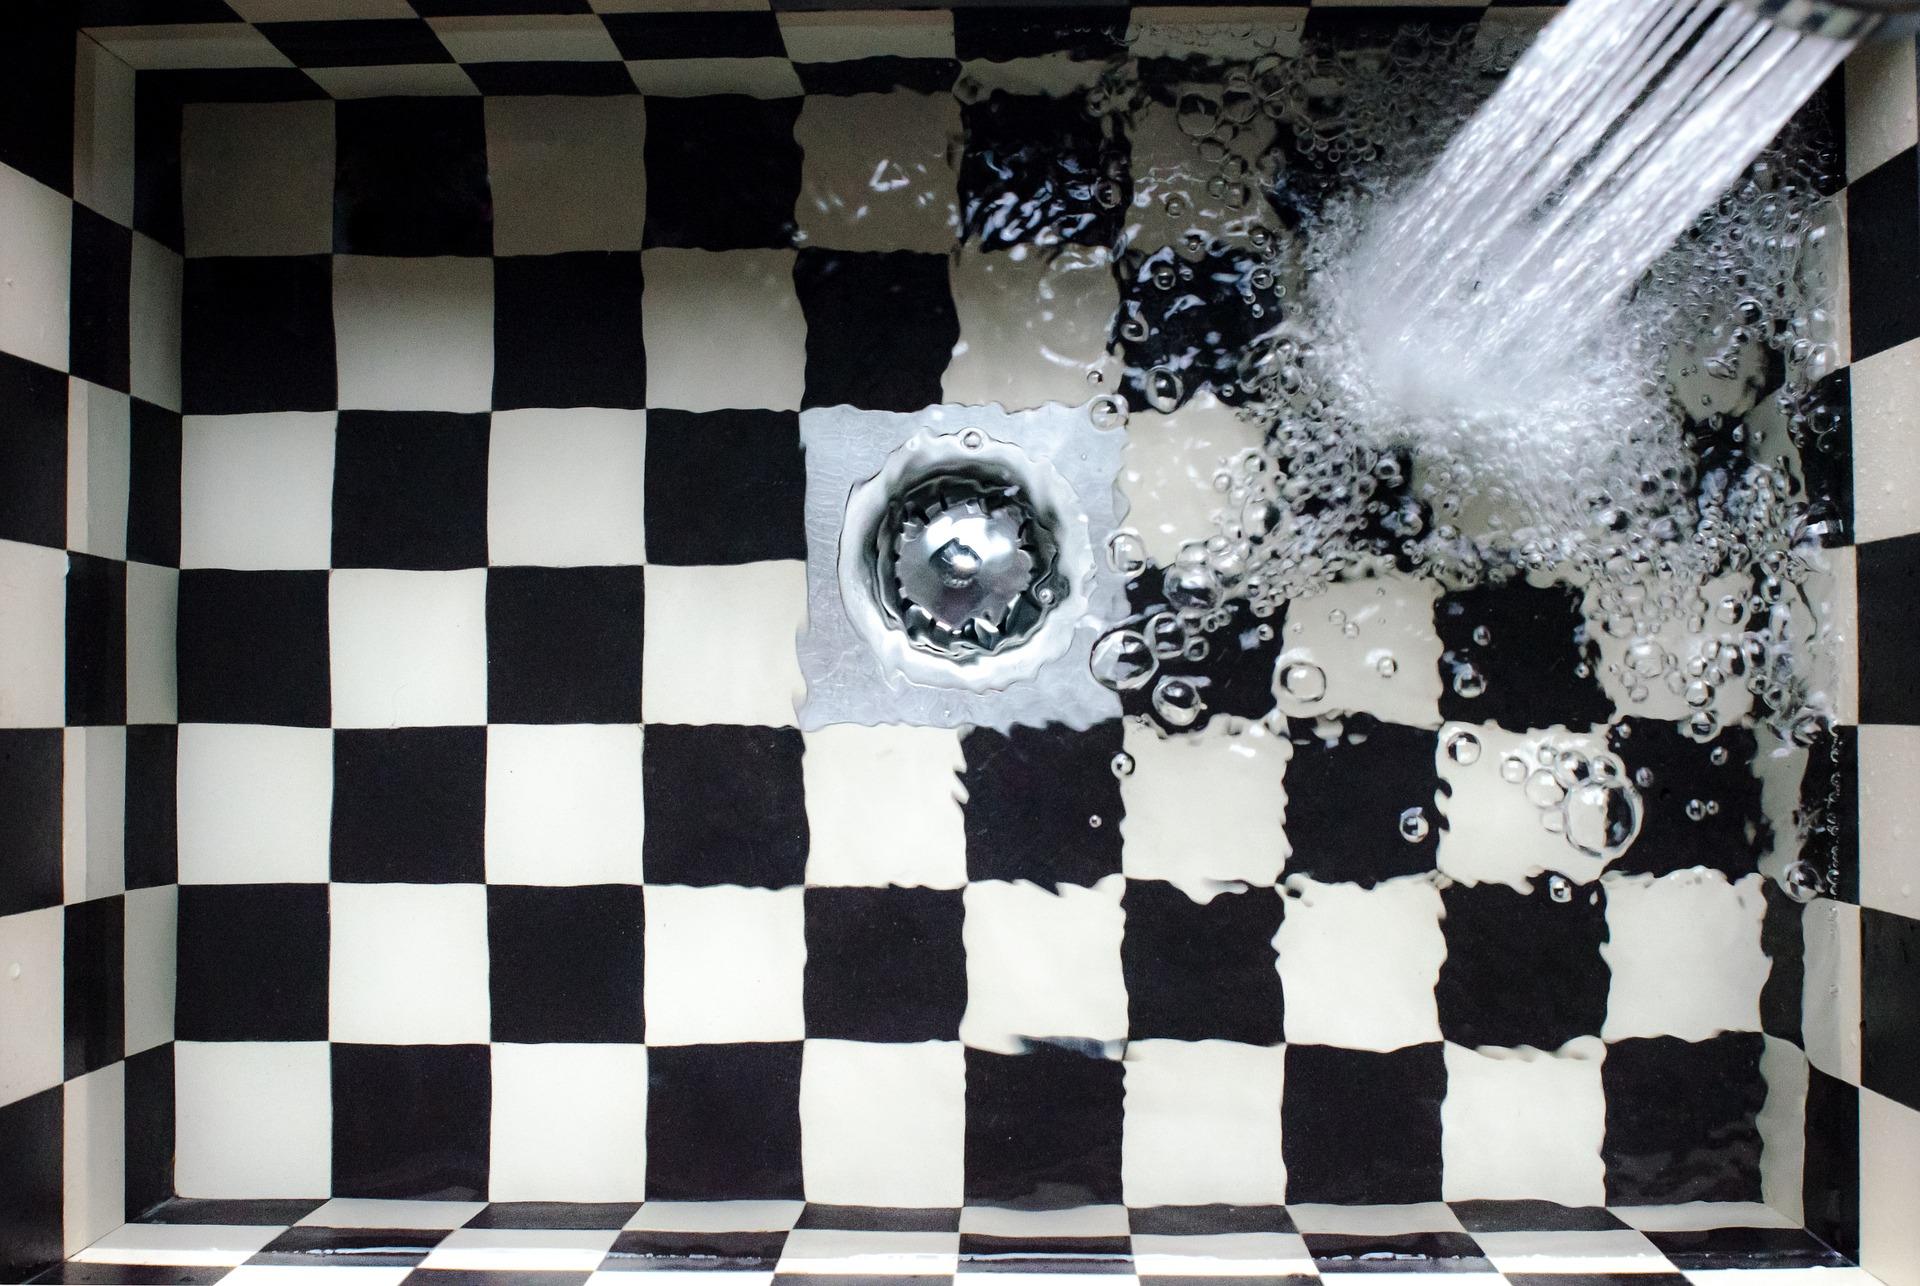 Checkered kitchen sink with water